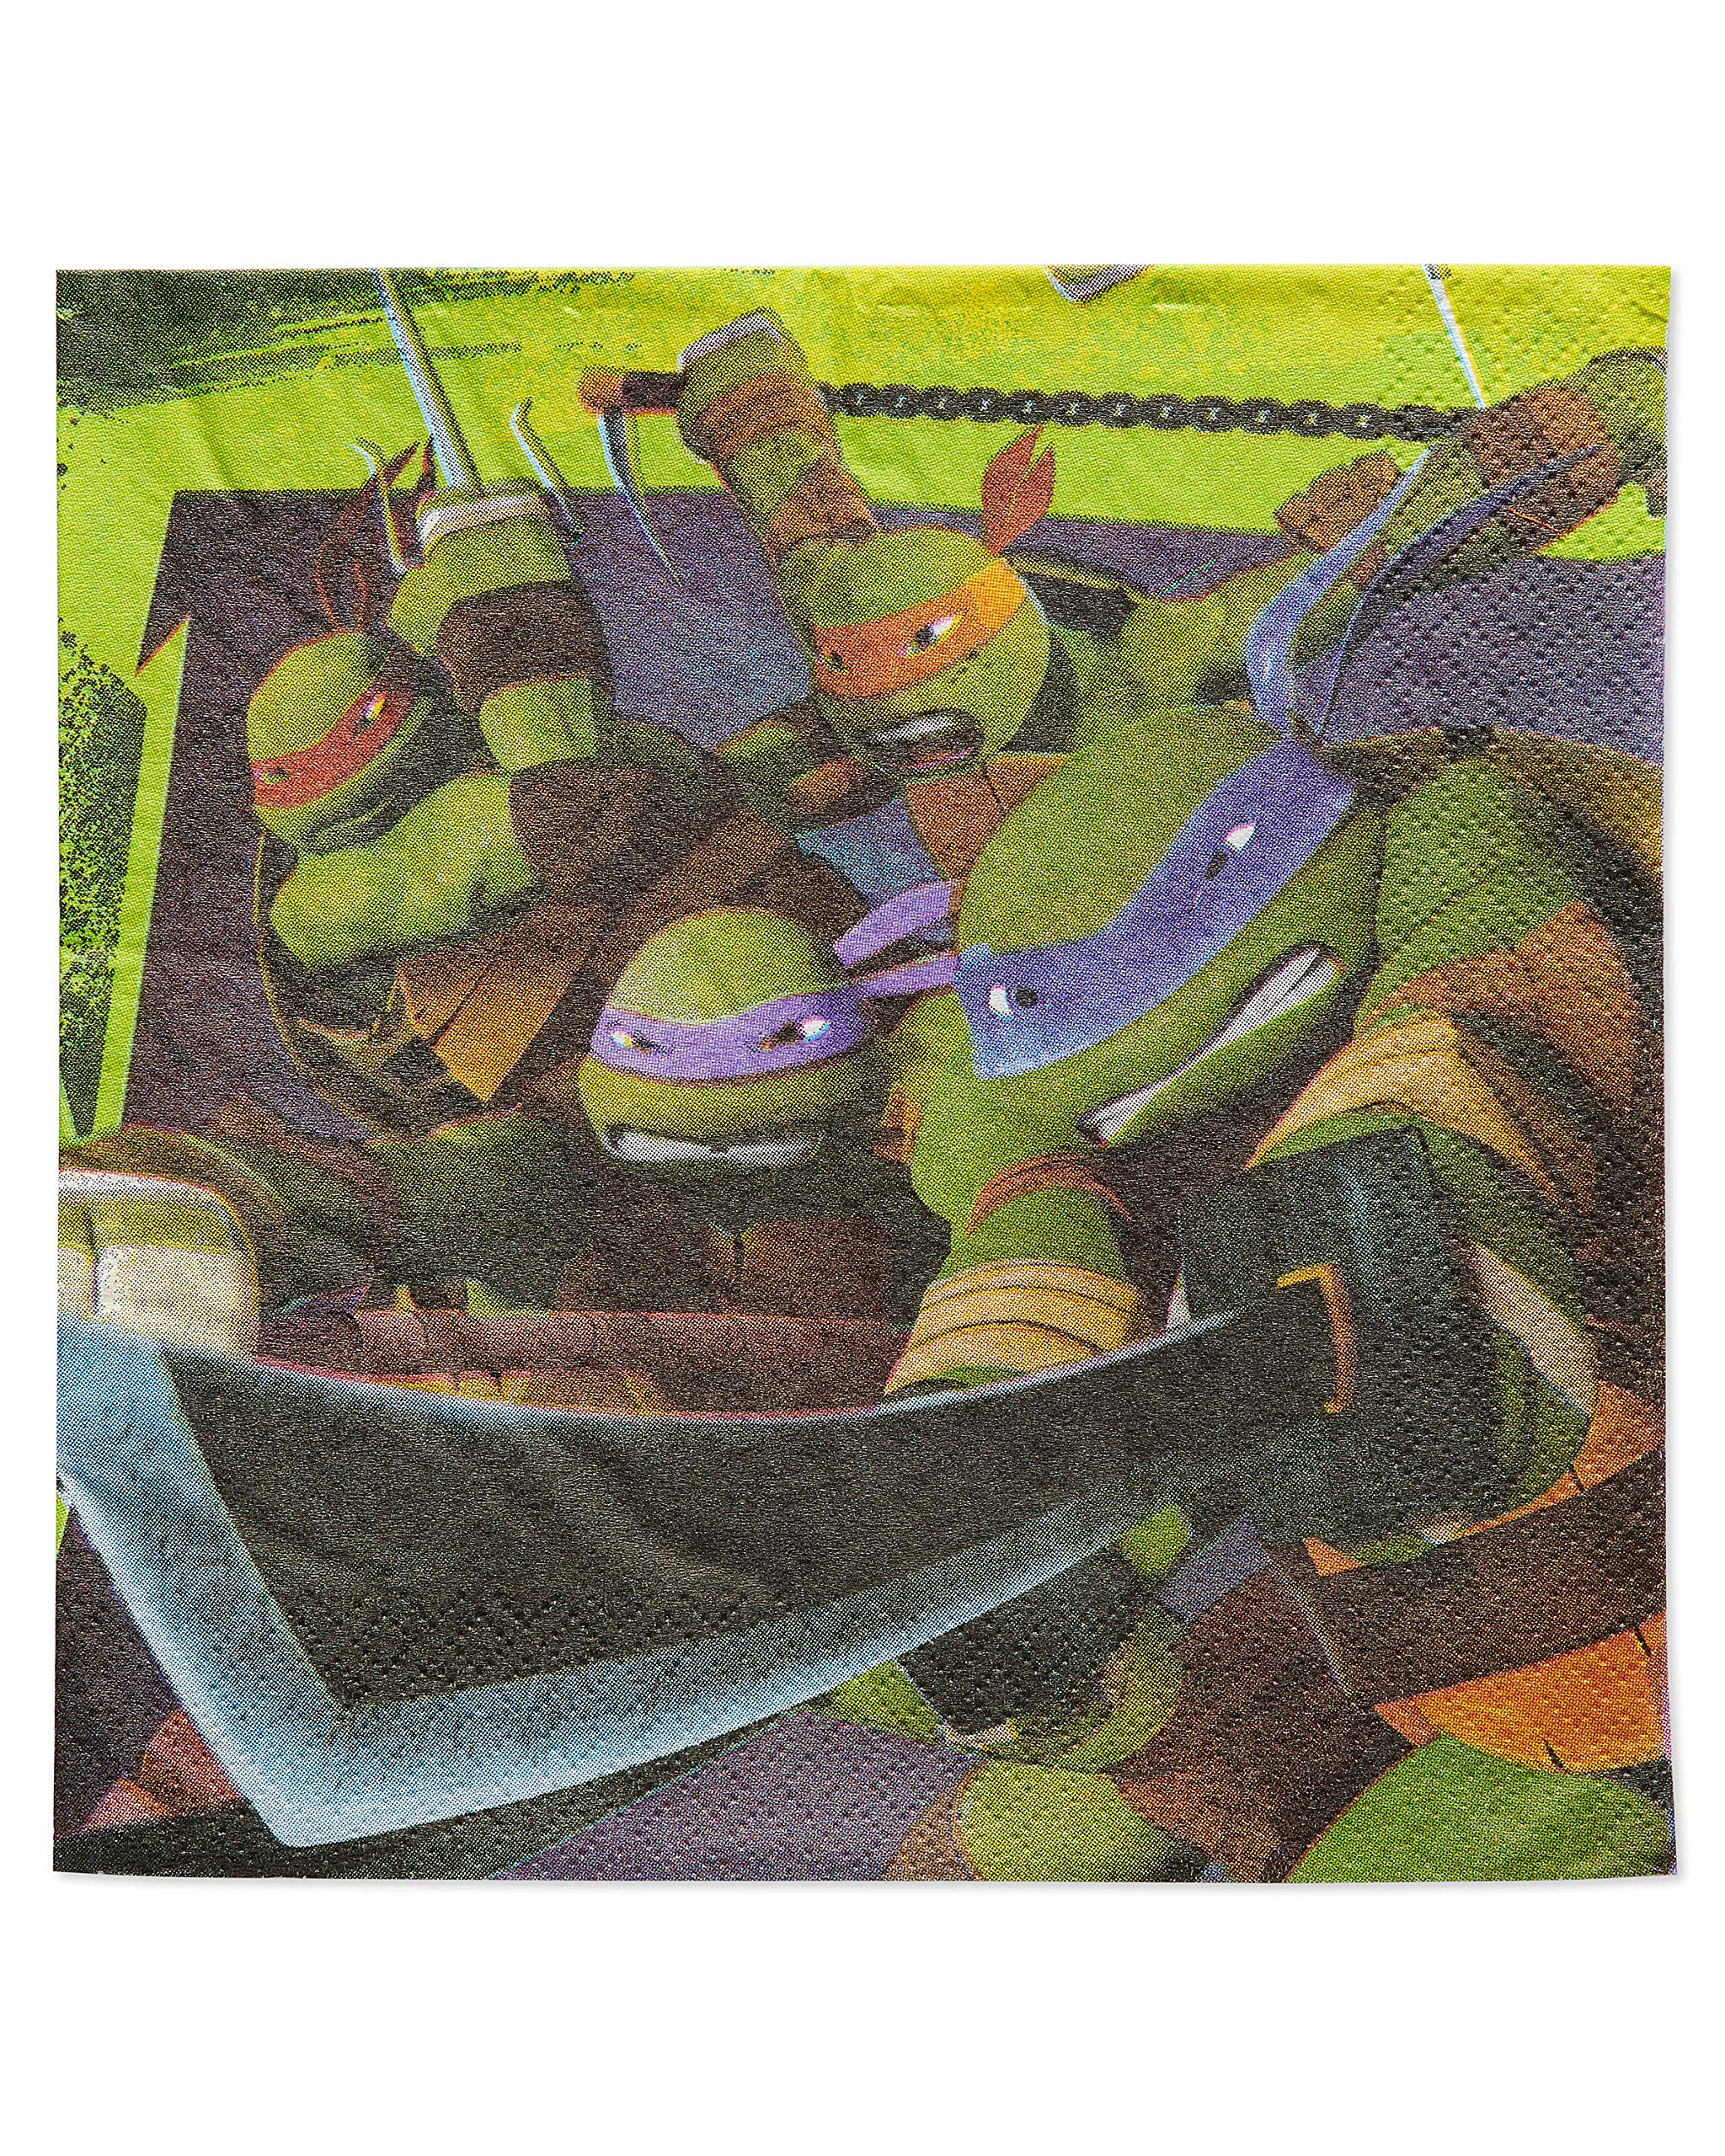 American Greetings Teenage Mutant Ninja Turtle Party Supplies, Paper Lunch Napkins, 48-Count by American Greetings/ Nickelodeon